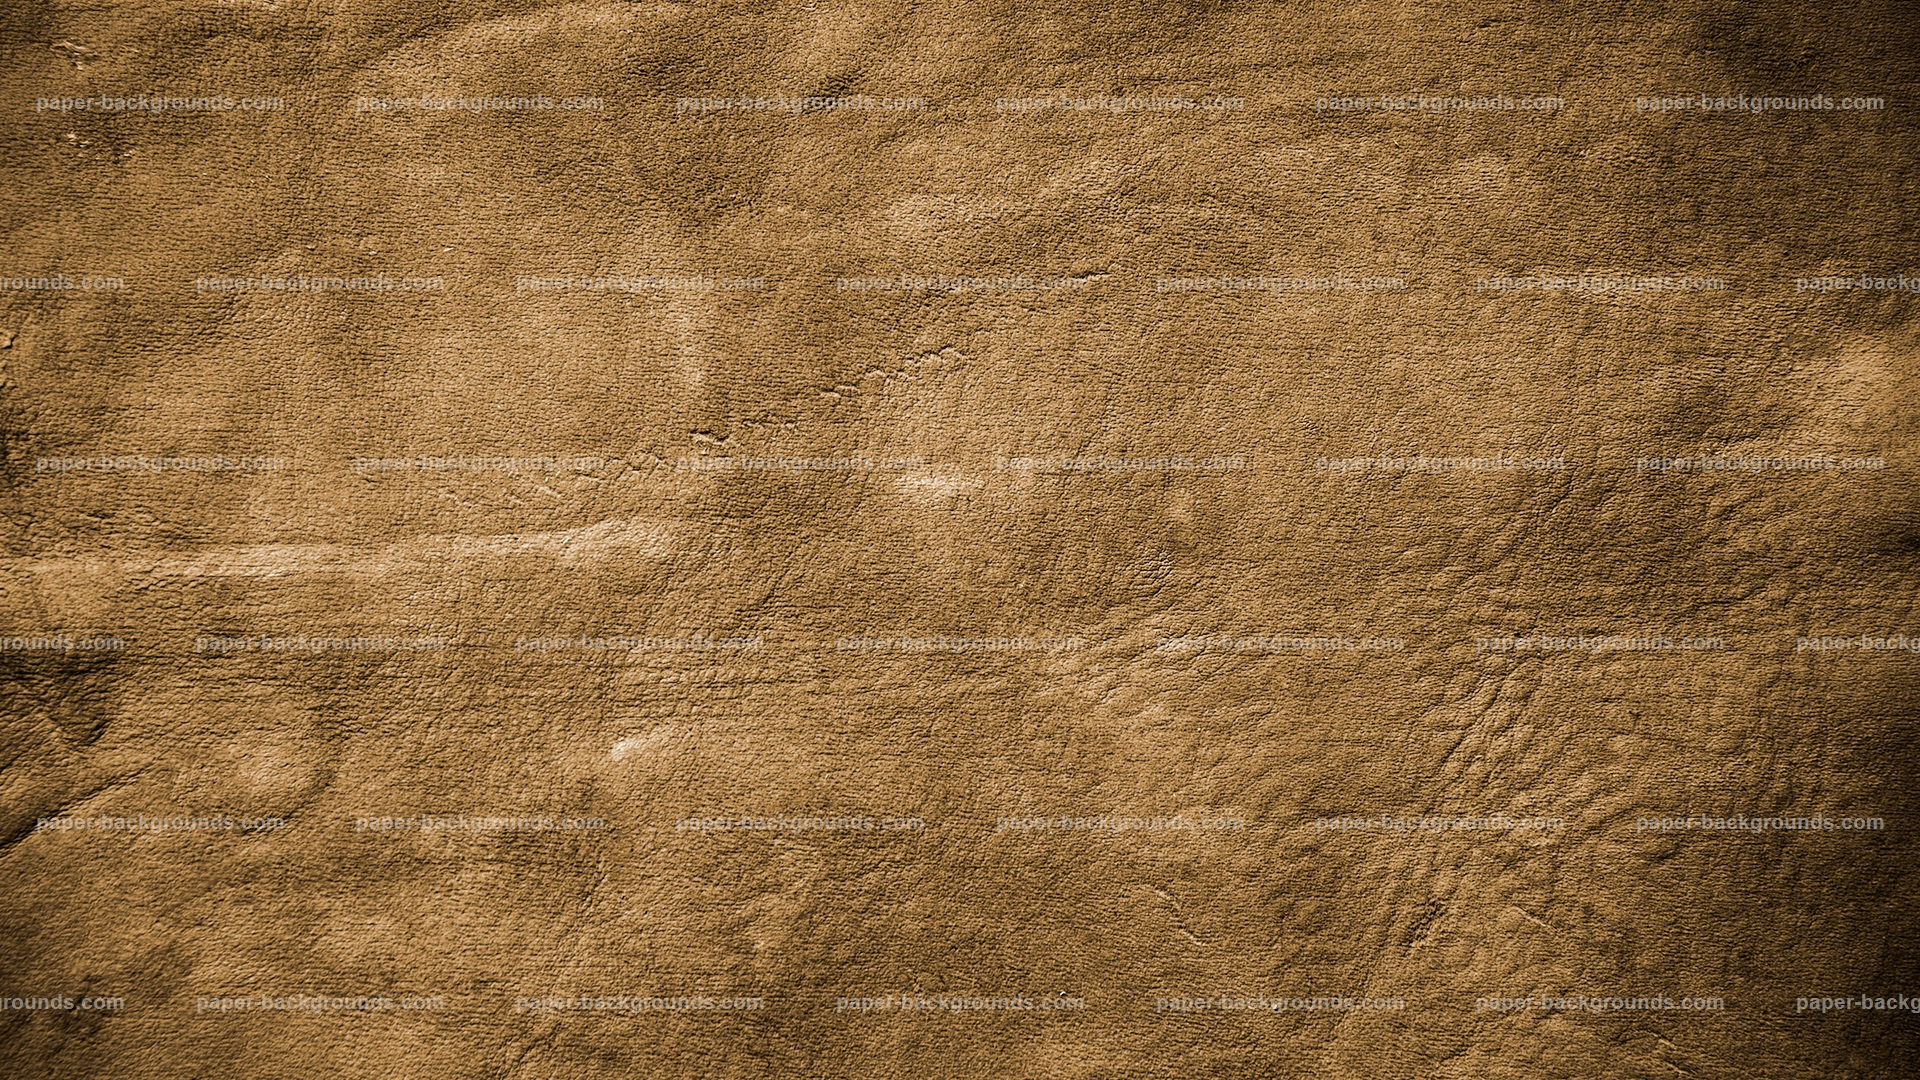 paper backgrounds vintage brown soft leather background